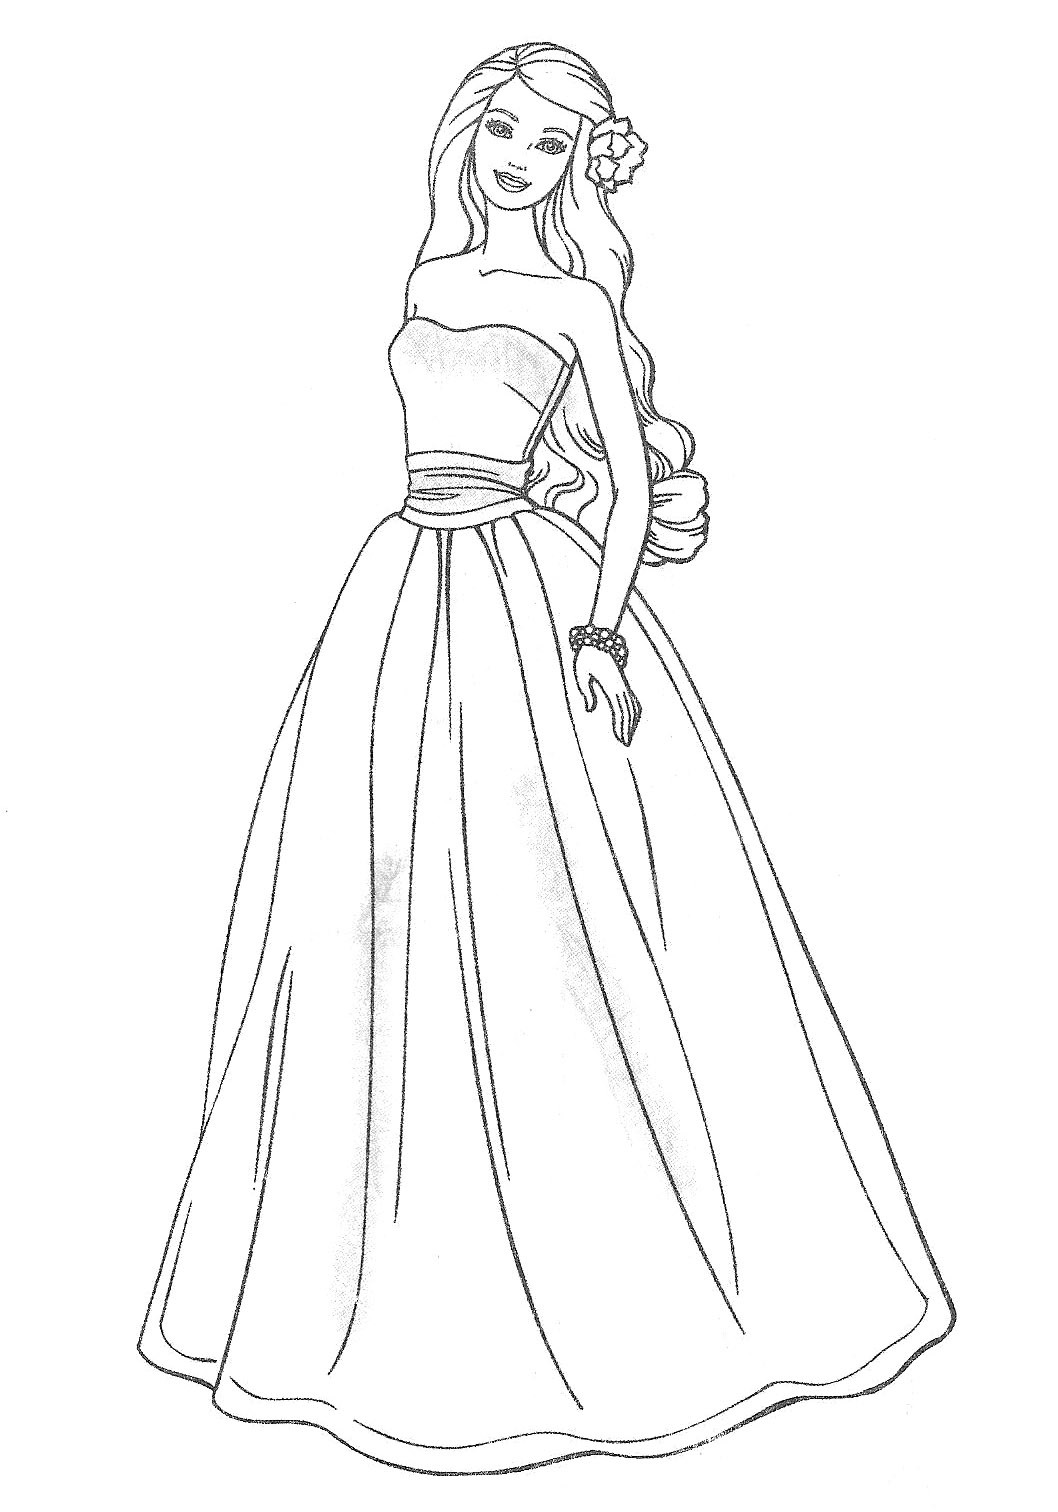 Barbie Doll Coloring Pages  elegant barbie coloring pages Free